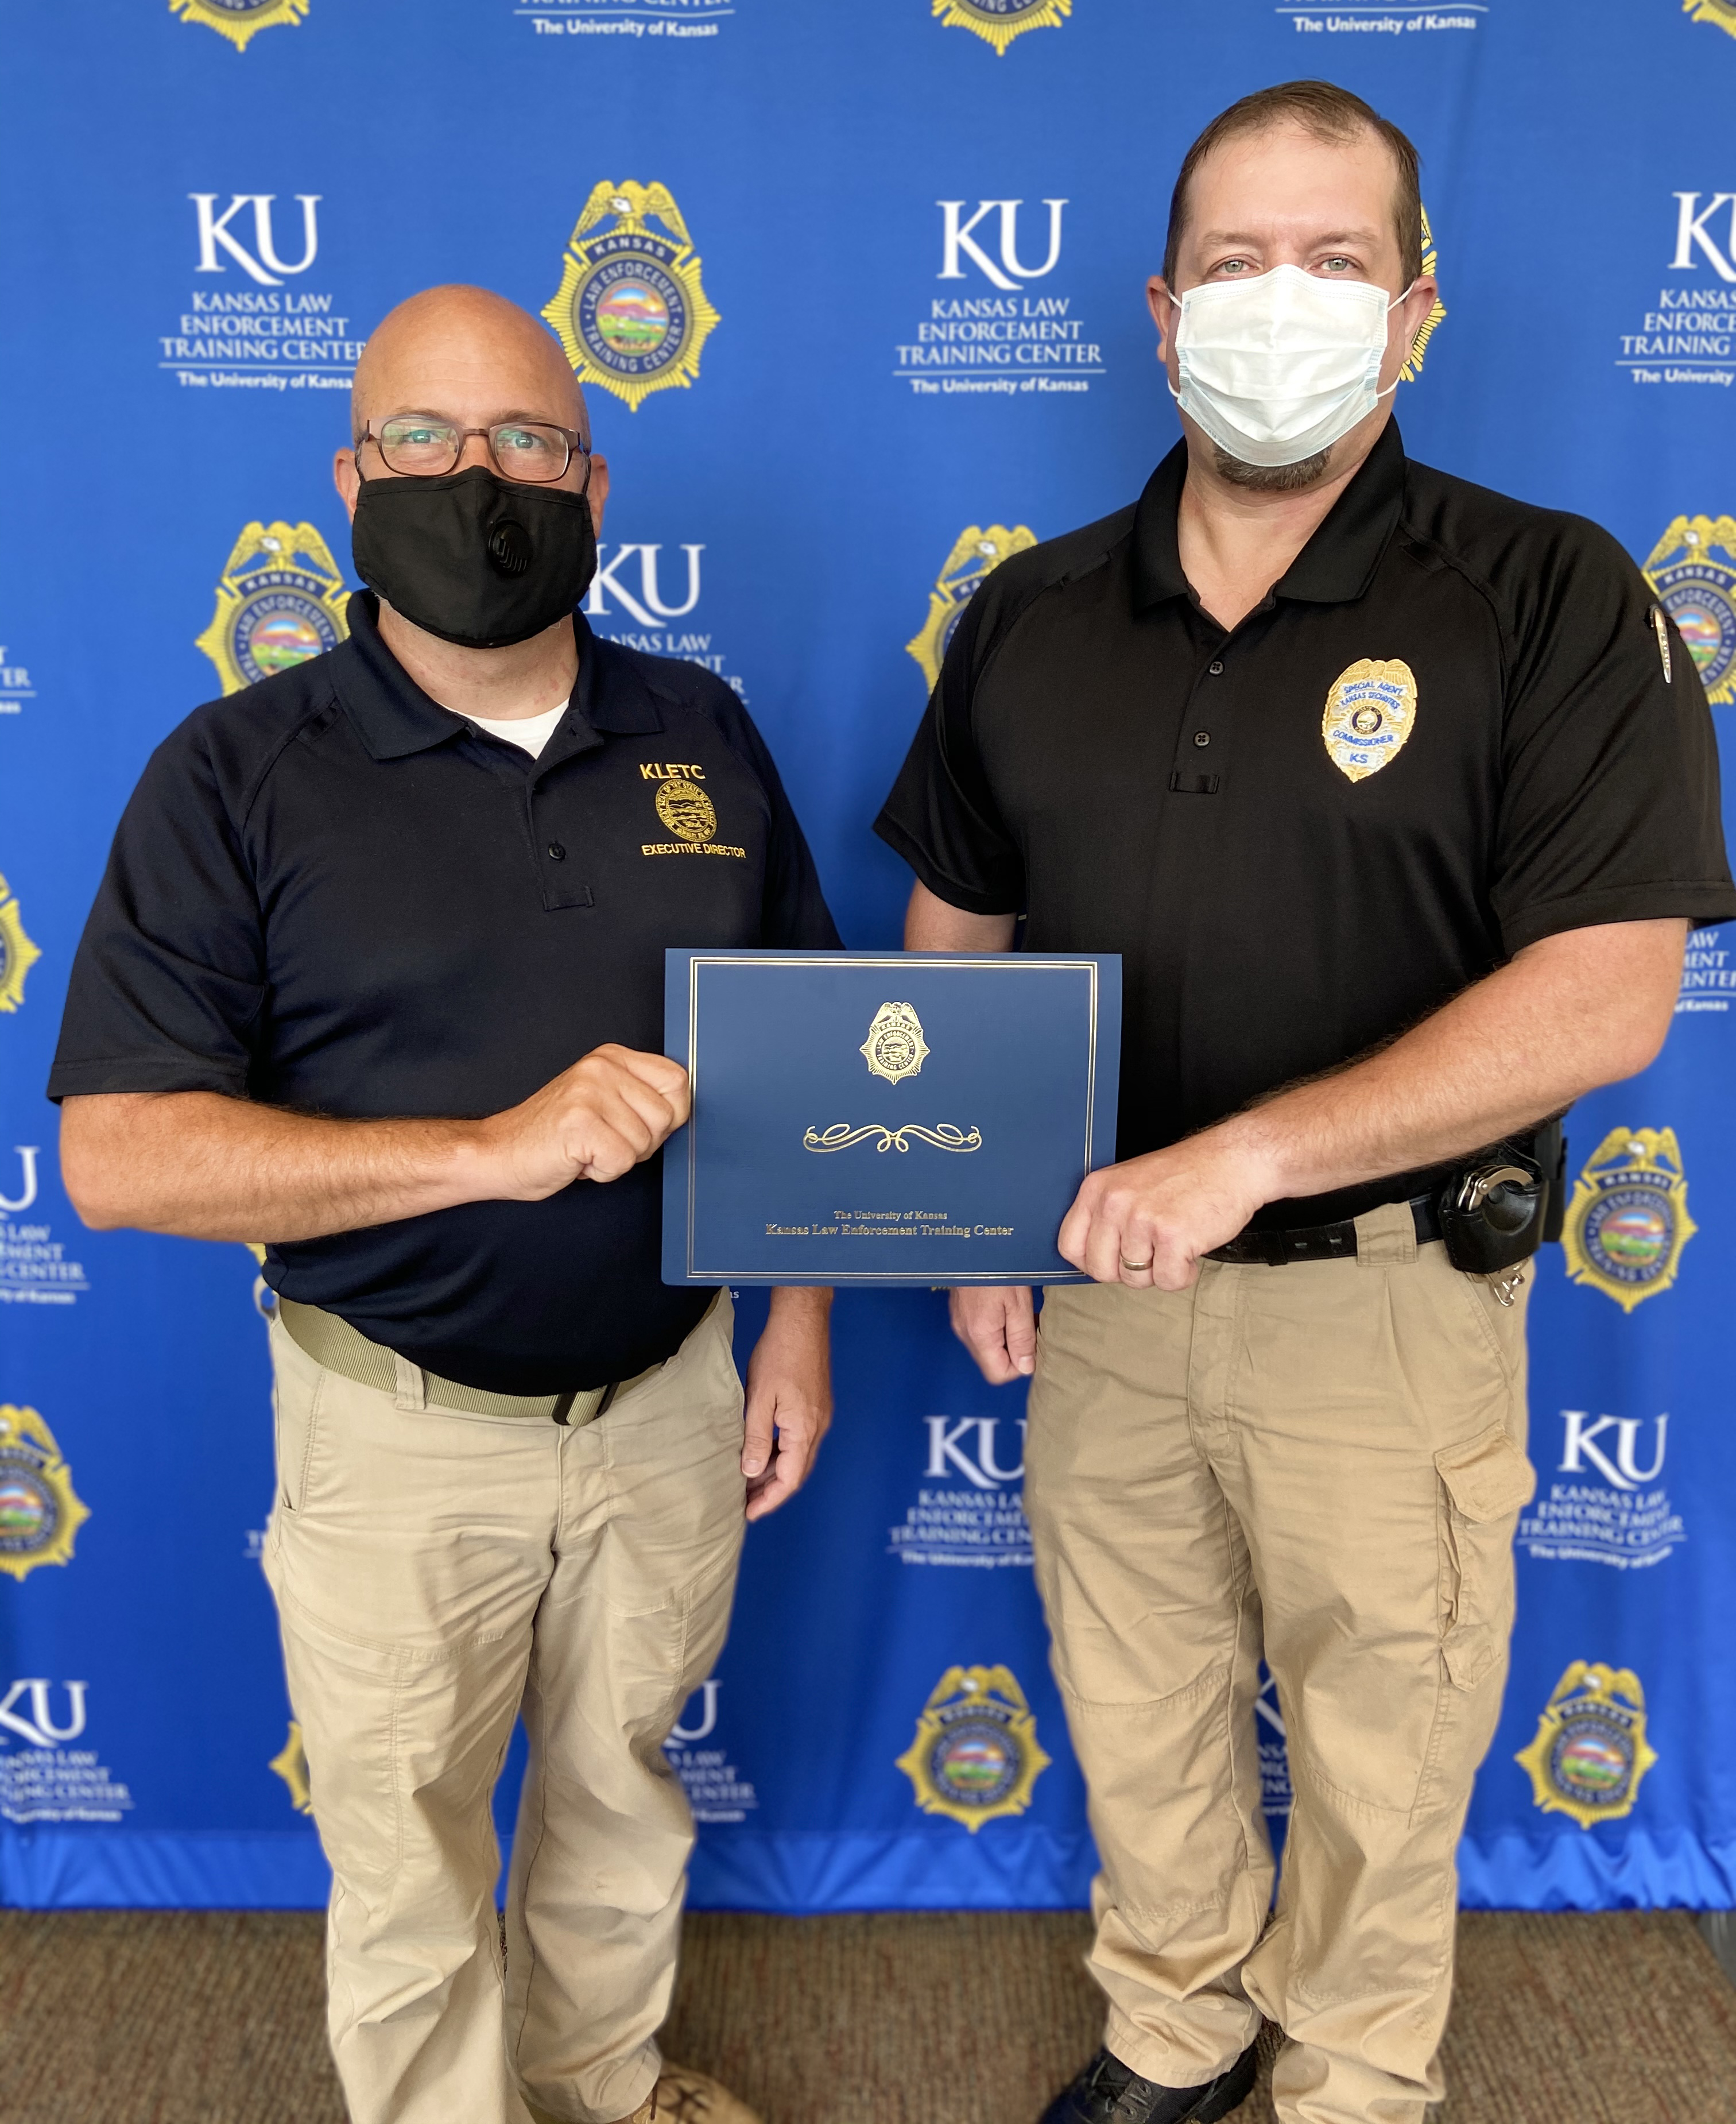 Ryan Morton, Special Agent with the Kansas Securities Commission, poses with his certificate with KLETC Executive Director Darin Beck.